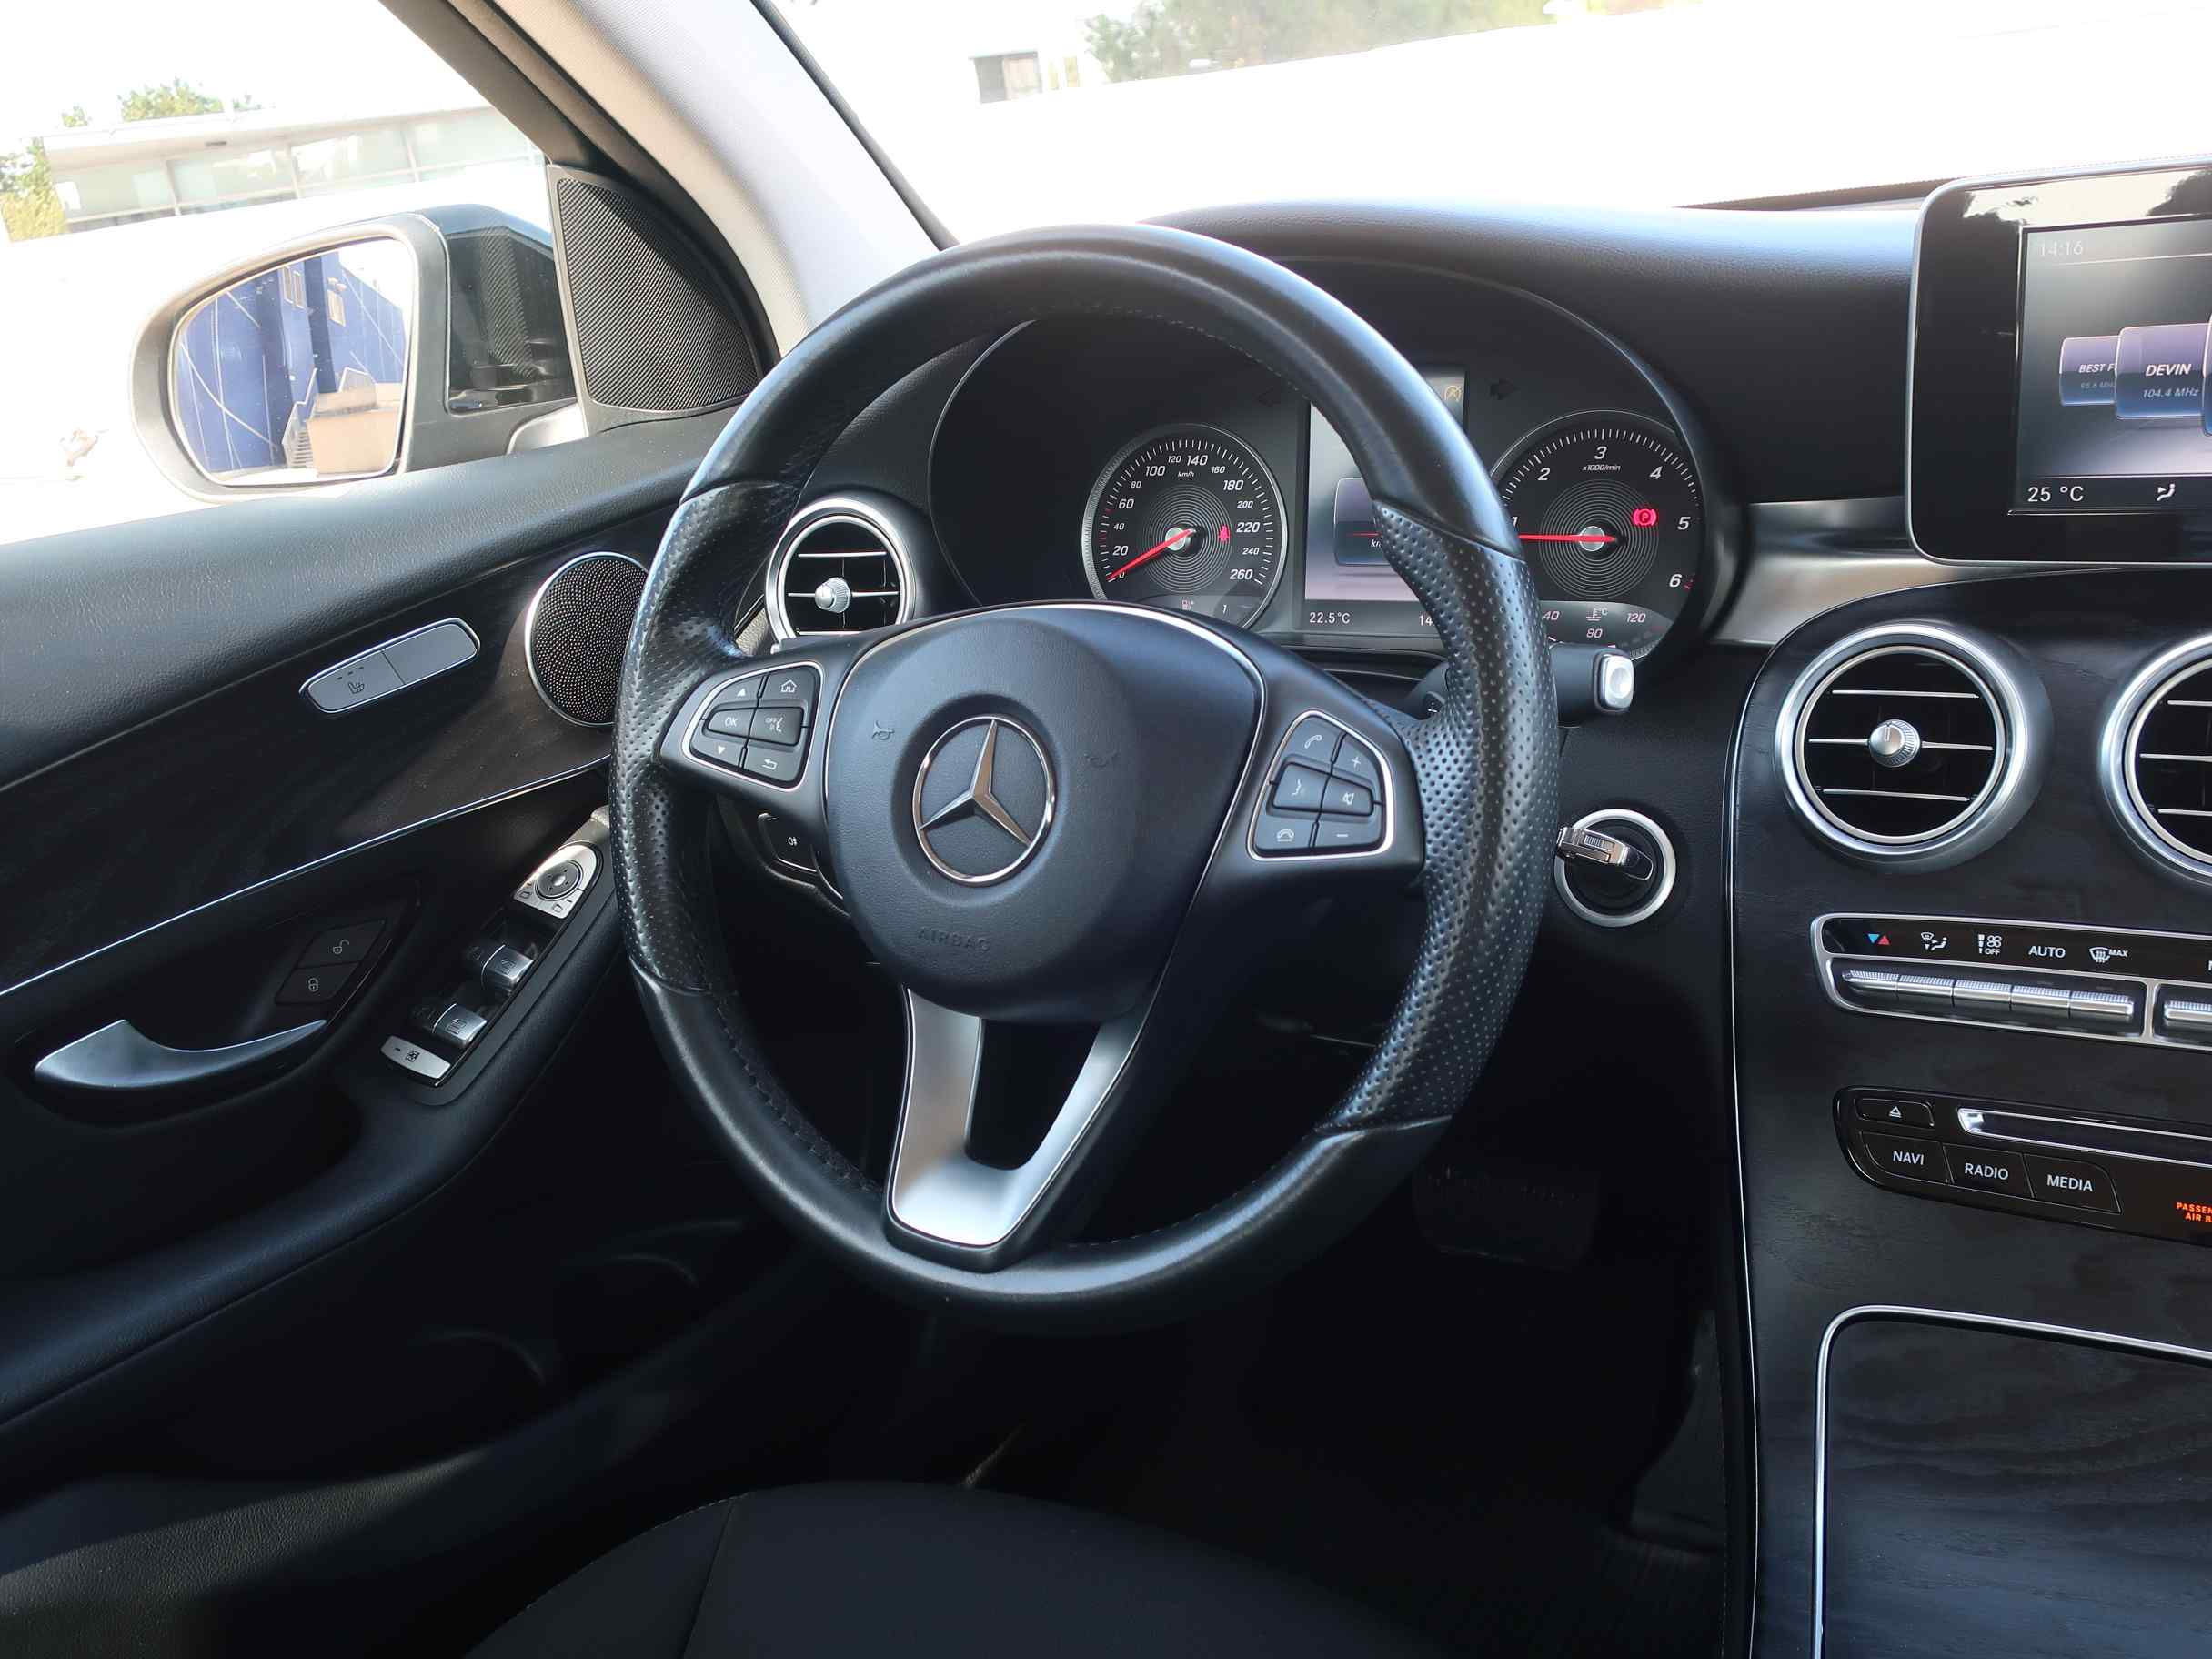 Mercedes GLC 250d 4matic